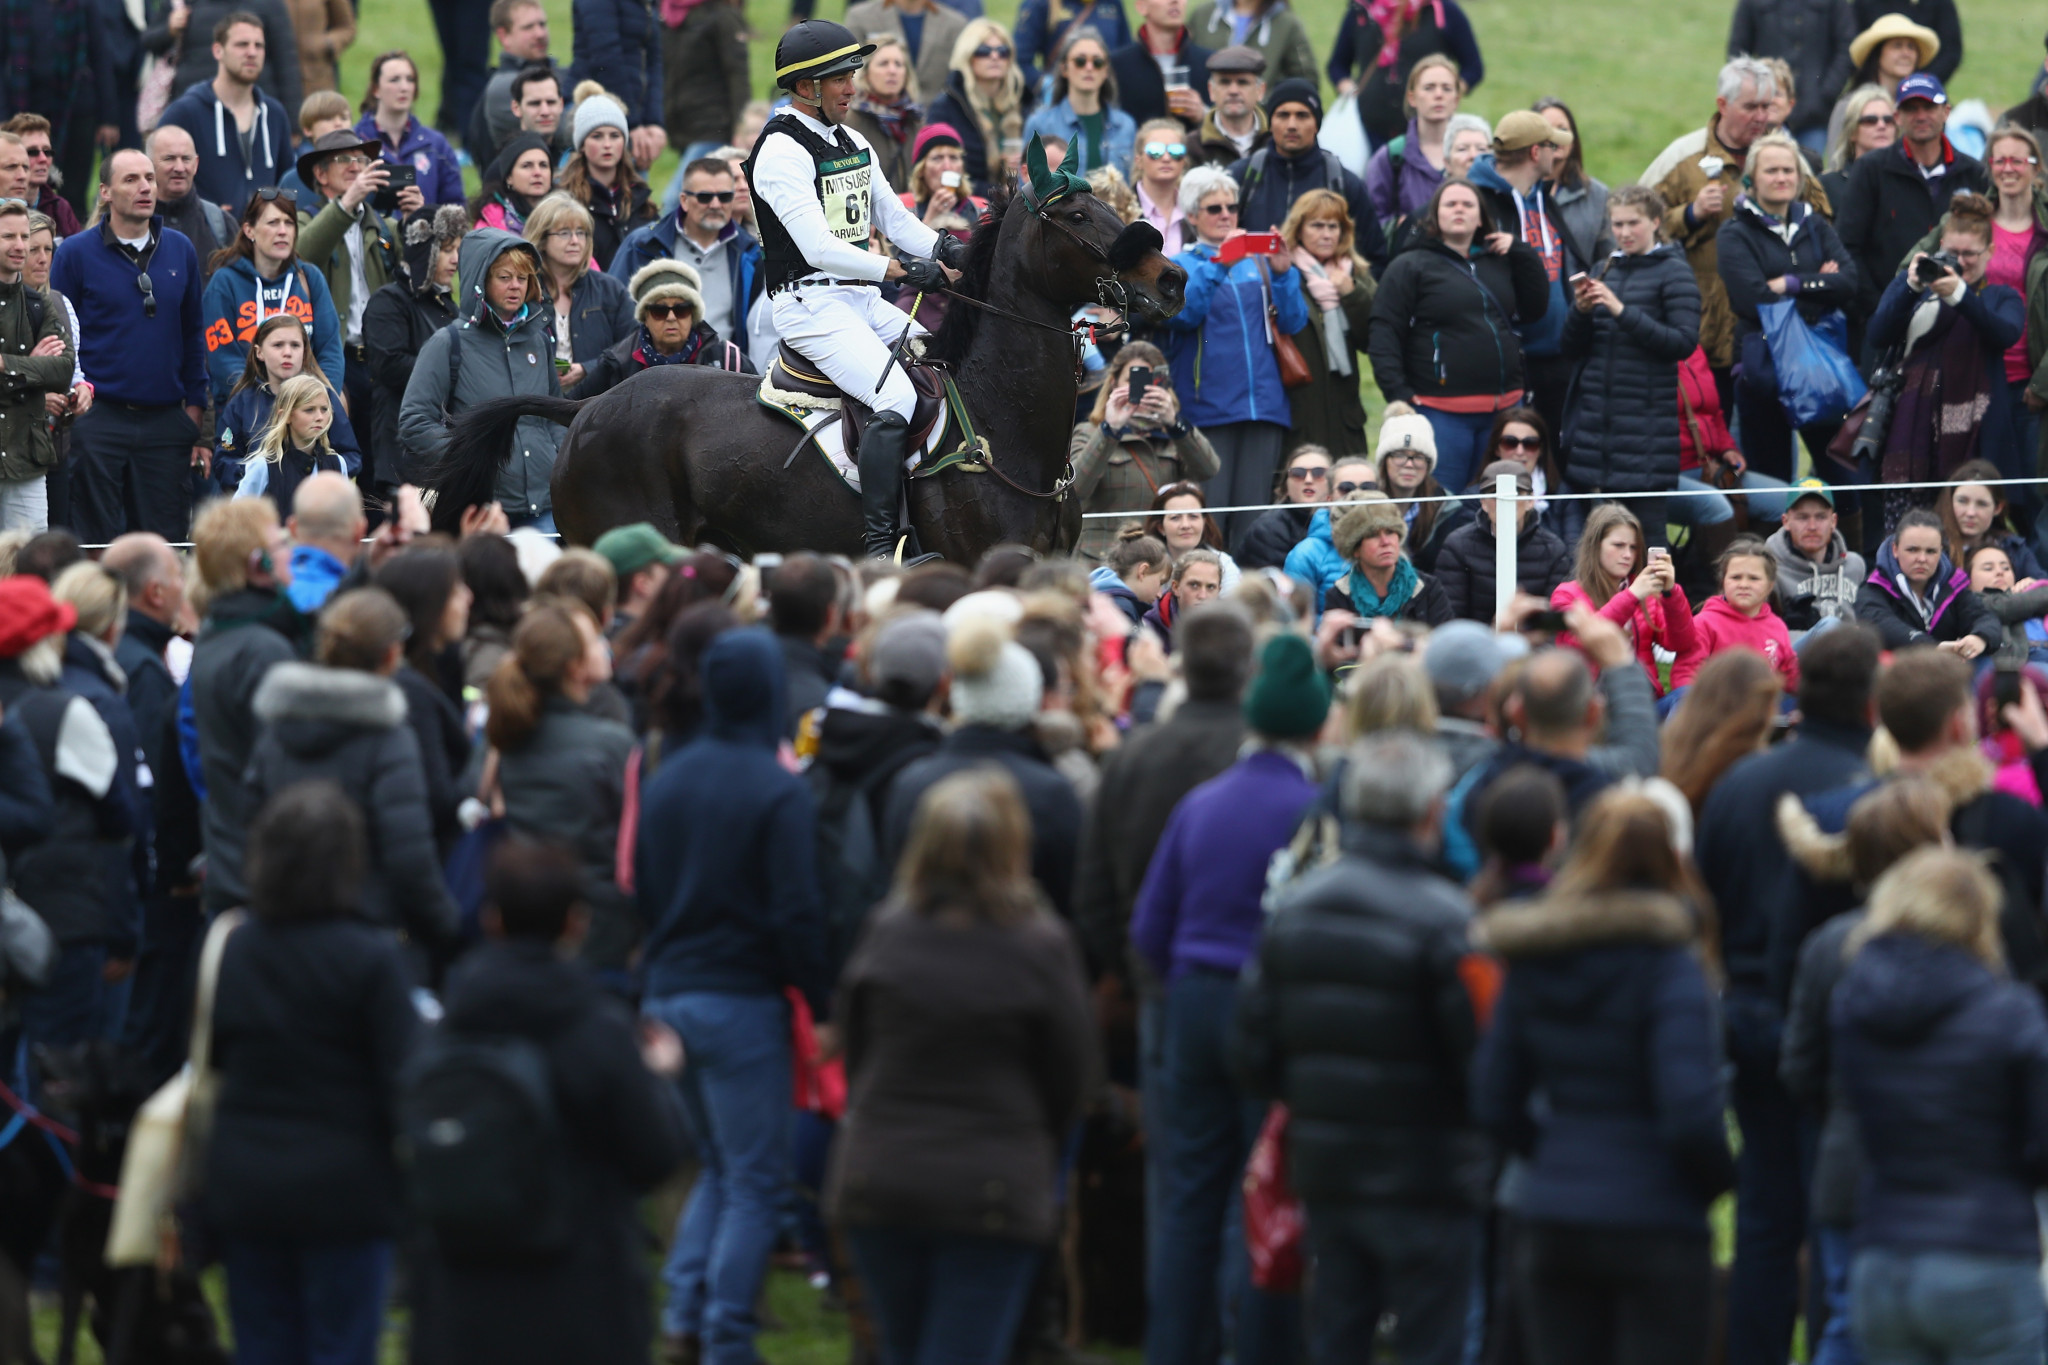 The Badminton Horse Trials, which traditionally attracts large crowds, has been cancelled for the second year in a row due to the coronavirus pandemic ©Getty Images